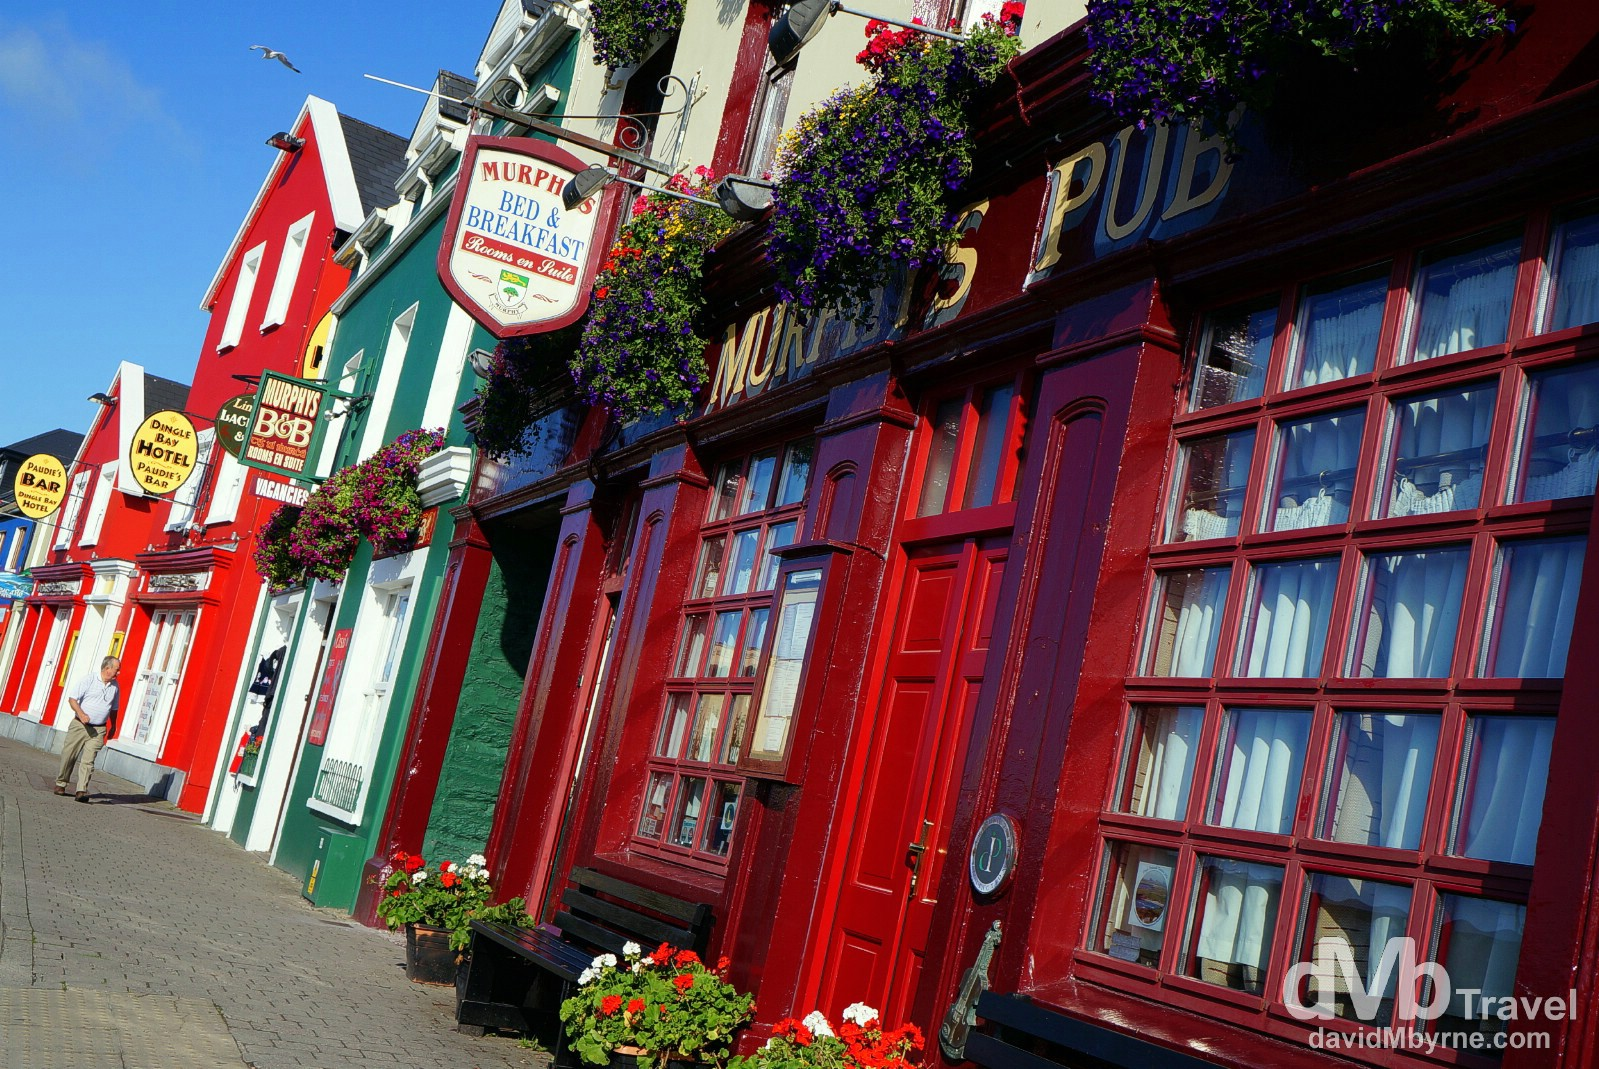 Strand Street, Dingle, Dingle Peninsula, Co. Kerry, Ireland. August 28, 2014.